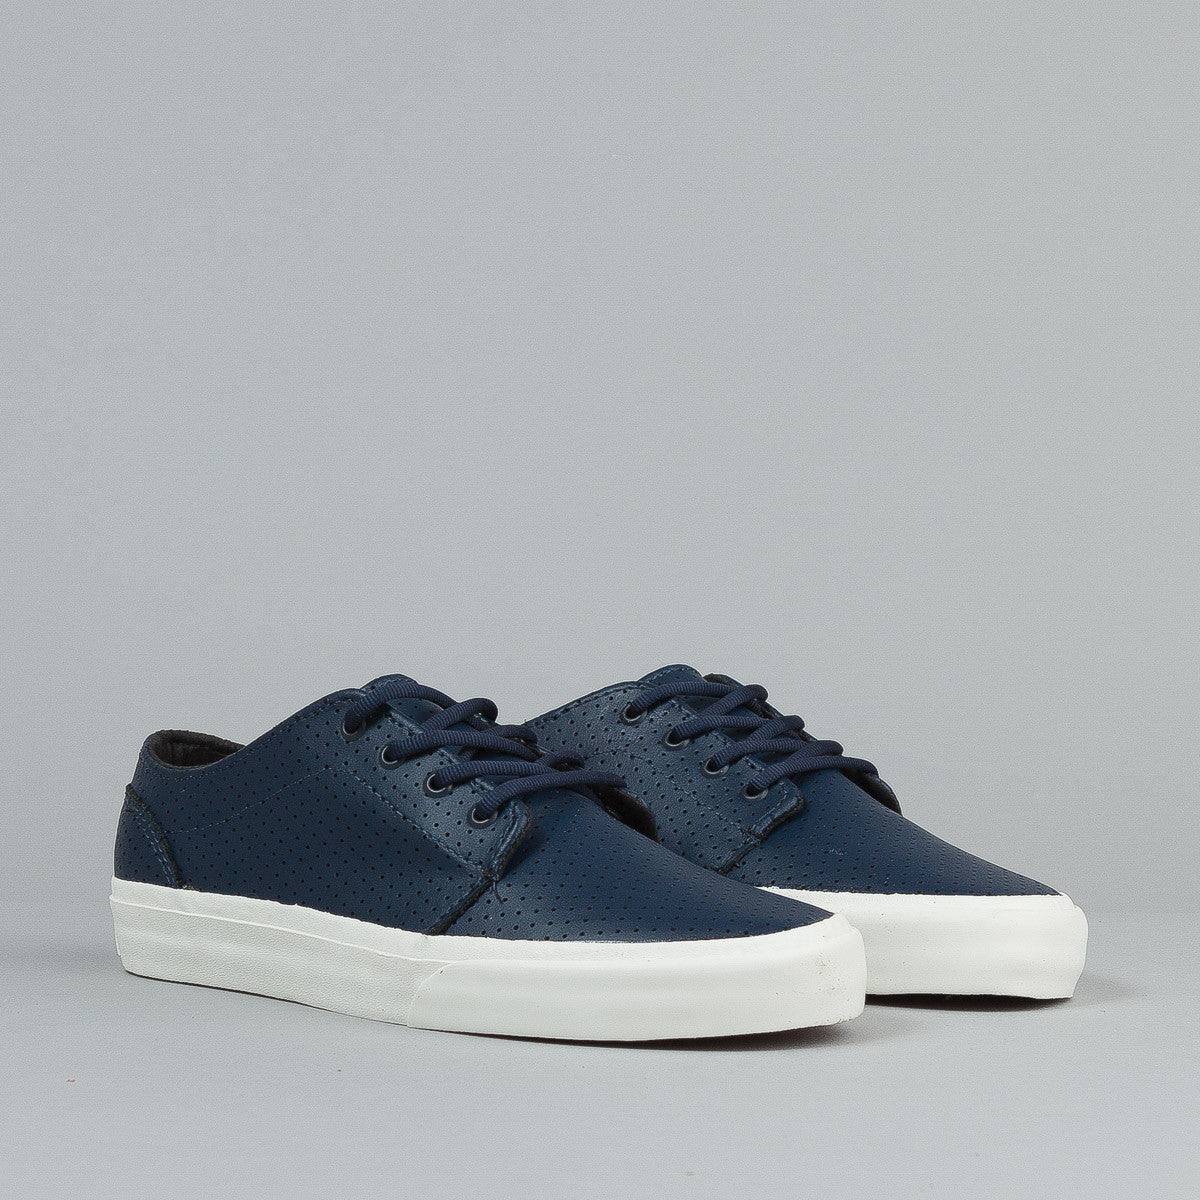 Vans 106 Vulc CA (Micro Perf) Dress Blue